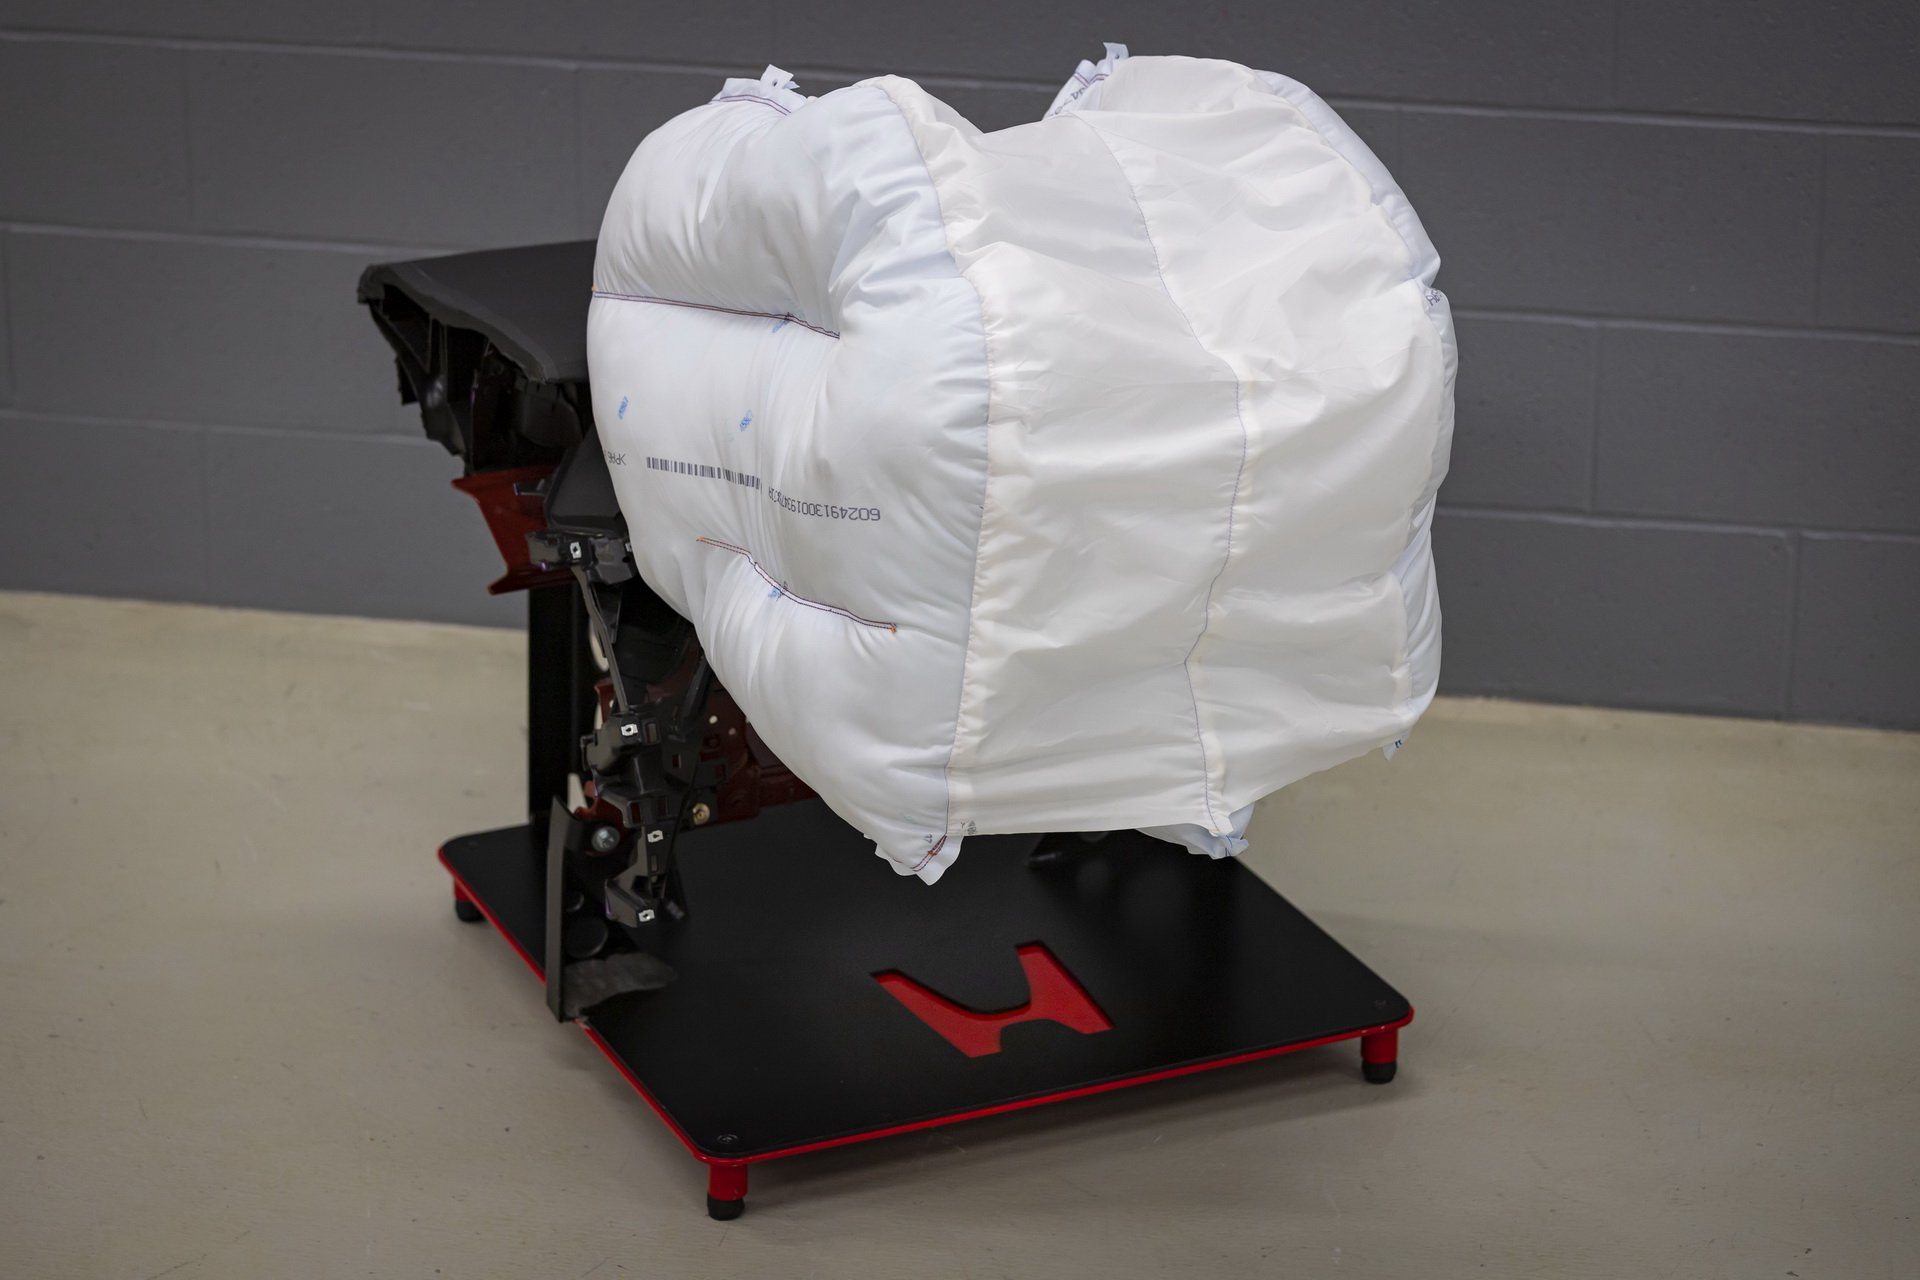 Honda_Innovative_Airbag_0000